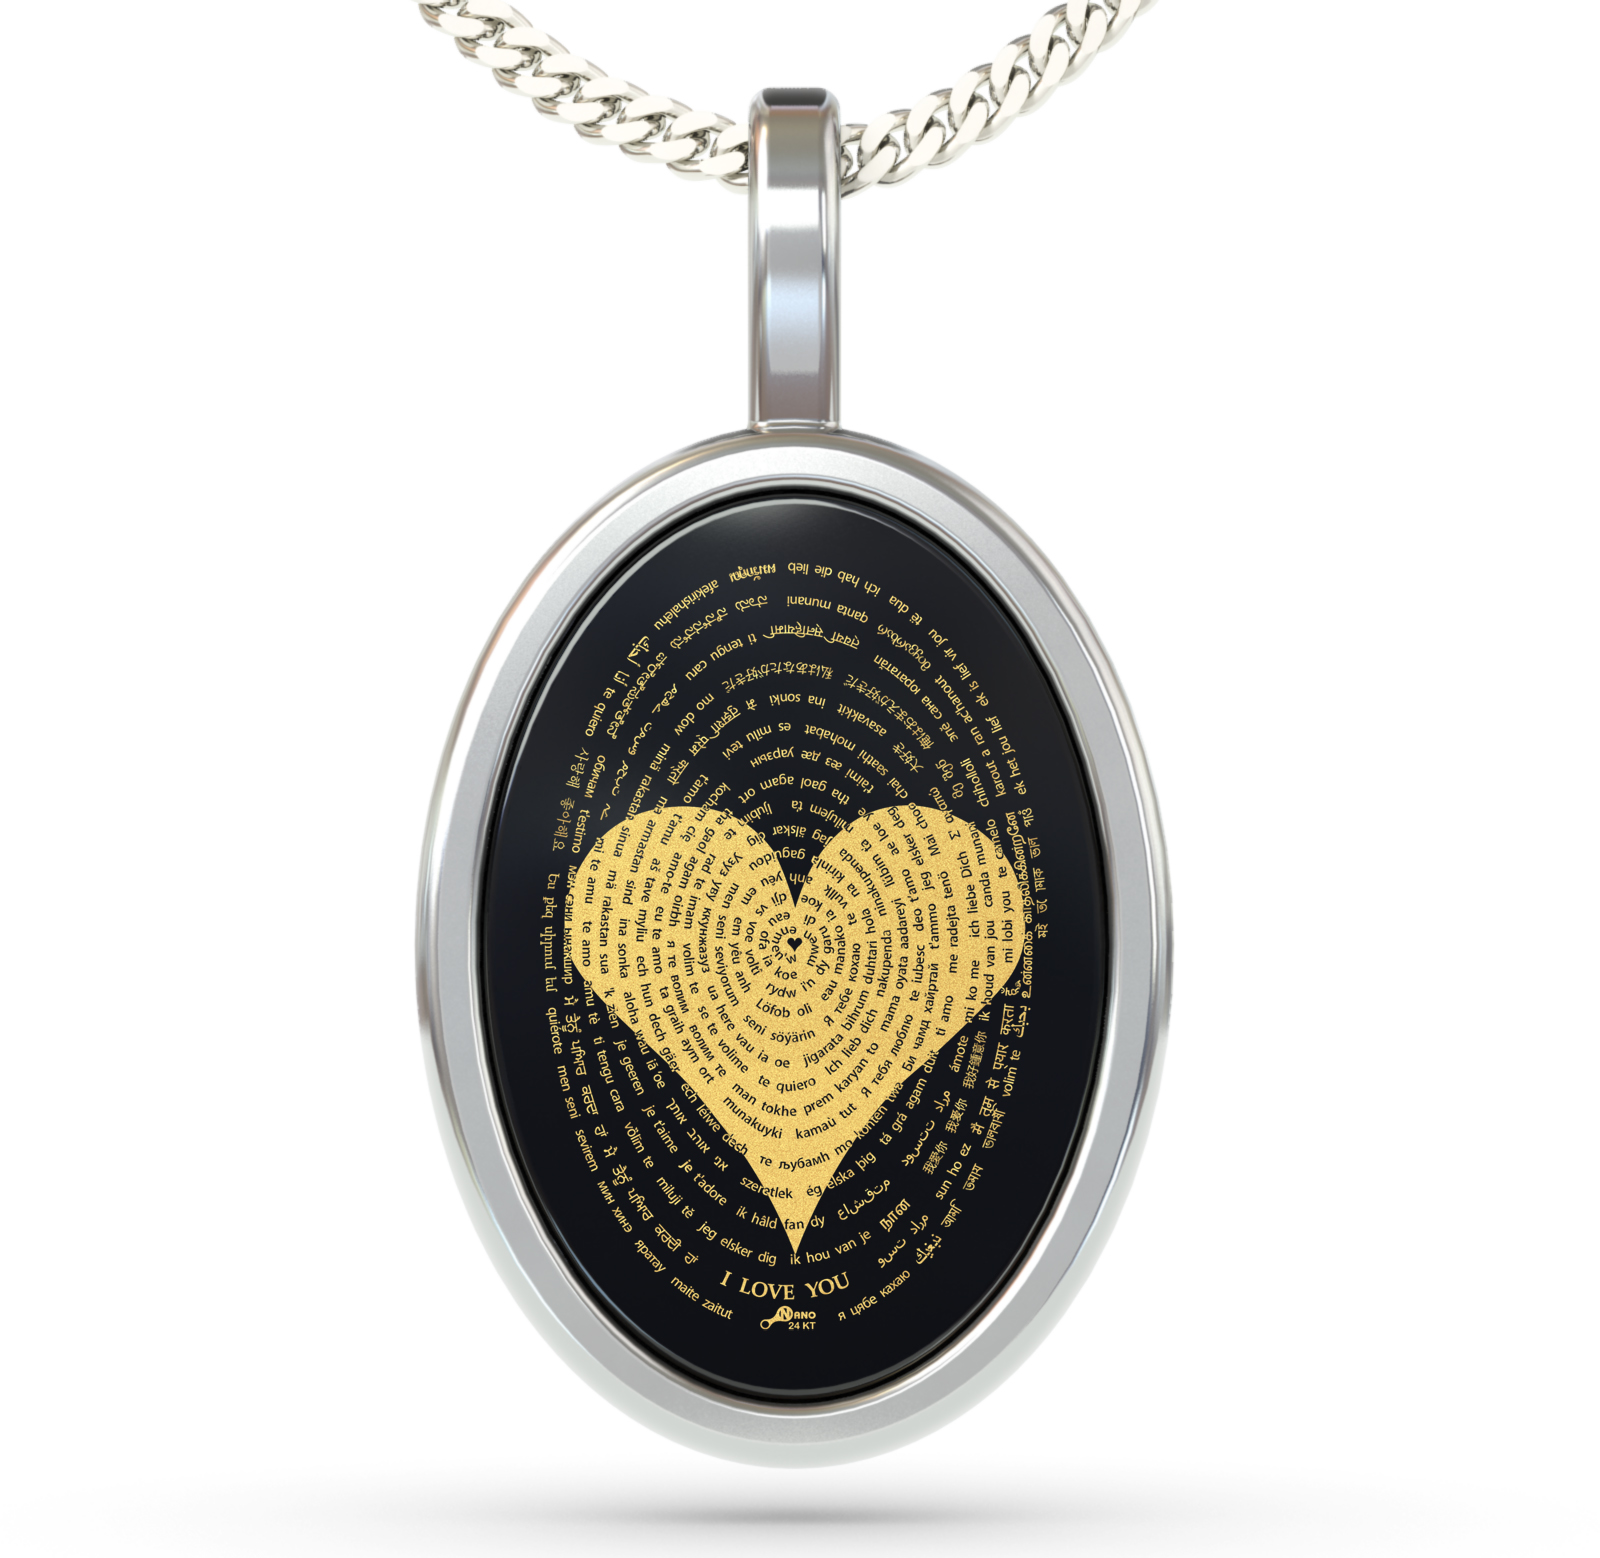 I love you 120 pendant